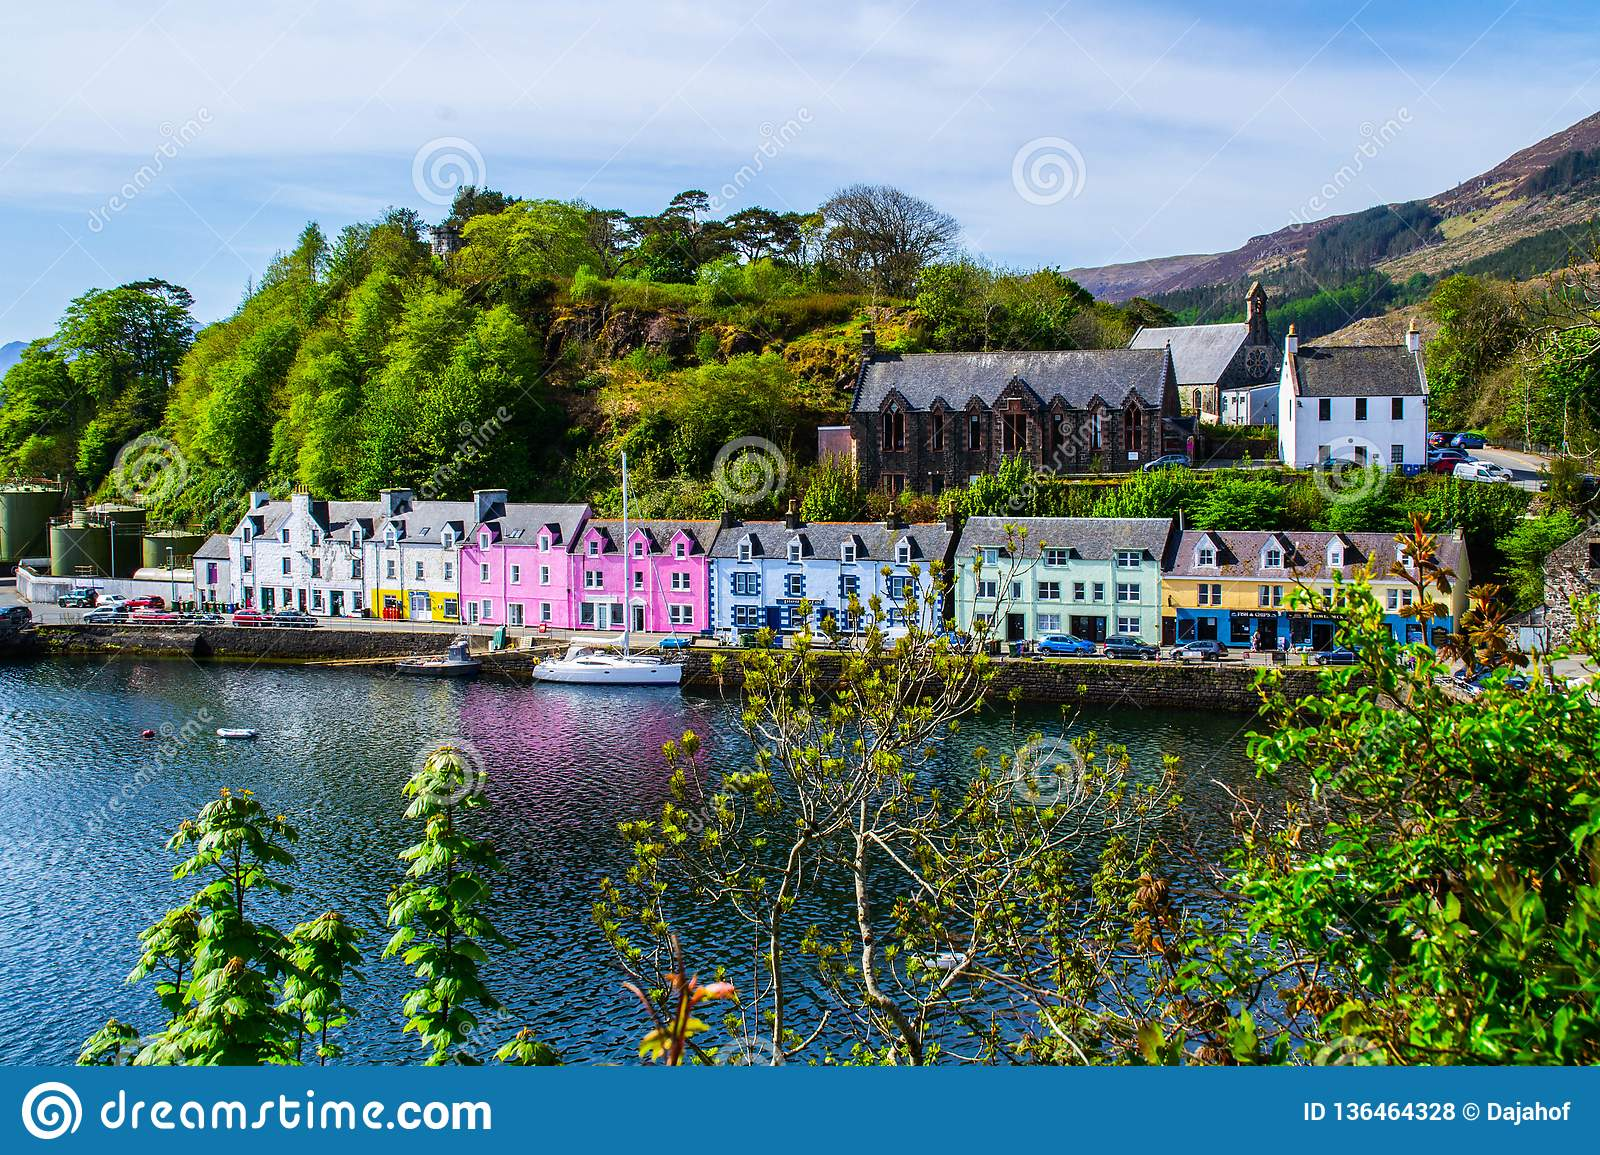 Harbour and colorful building in Potree, Isle Of Skye, Scotland